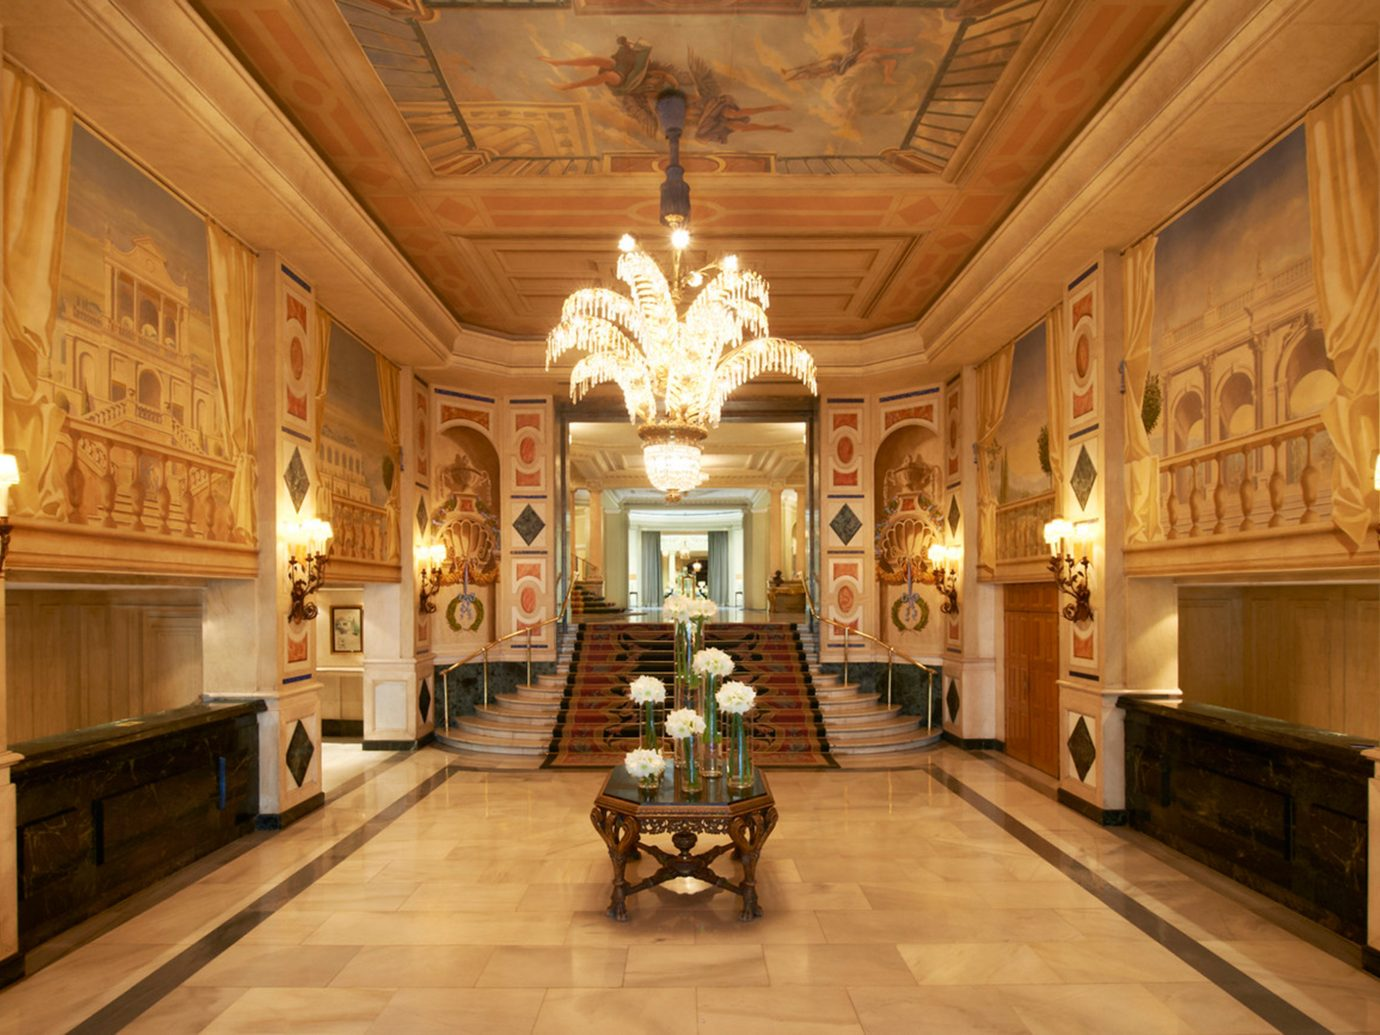 Elegant Historic Hotels Living Lobby Lounge Madrid Spain indoor floor ceiling building estate palace mansion interior design ancient history tourist attraction chapel place of worship hall fancy